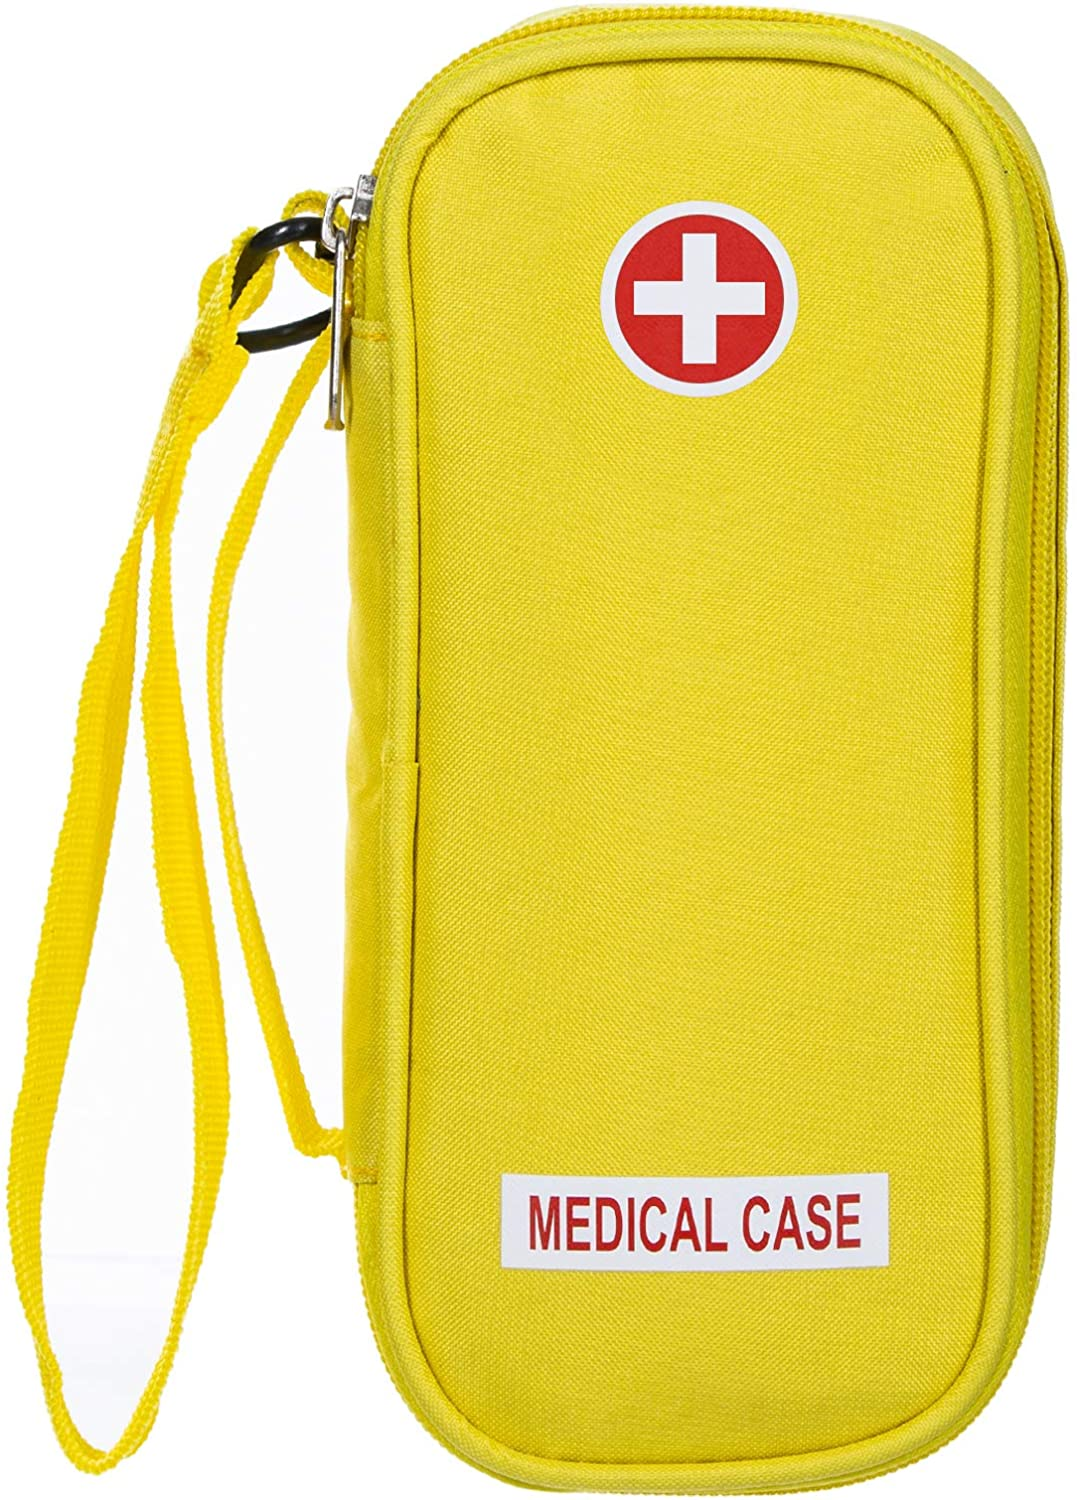 EpiPen Carrying Medical Case - Yellow Insulated Portable Bag with Zipper - for 2 EpiPen's, Auvi-Q, Asthma Inhaler, Small Ice Pack, Eye Drops, Allergy Medicine Essentials